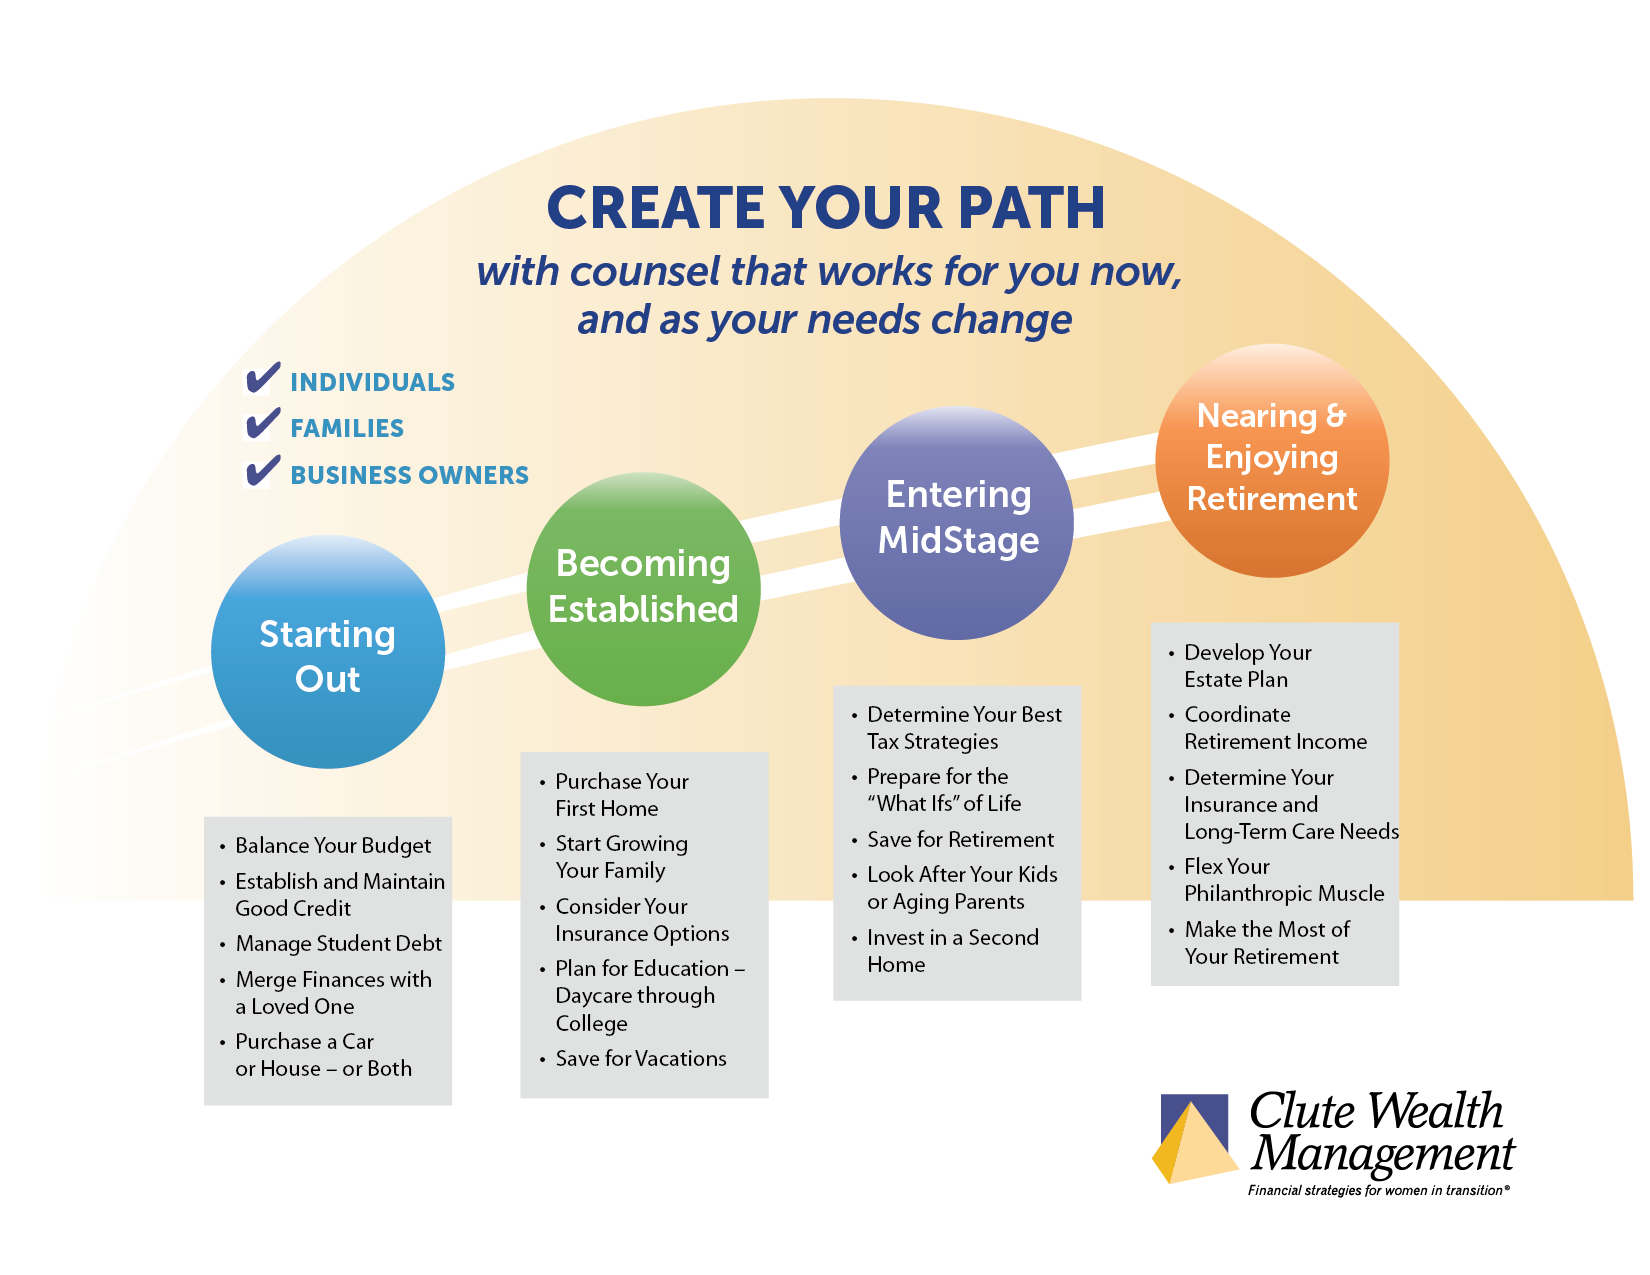 Our Approach_Create Your Own Path_Clute-Wealth-Management_10